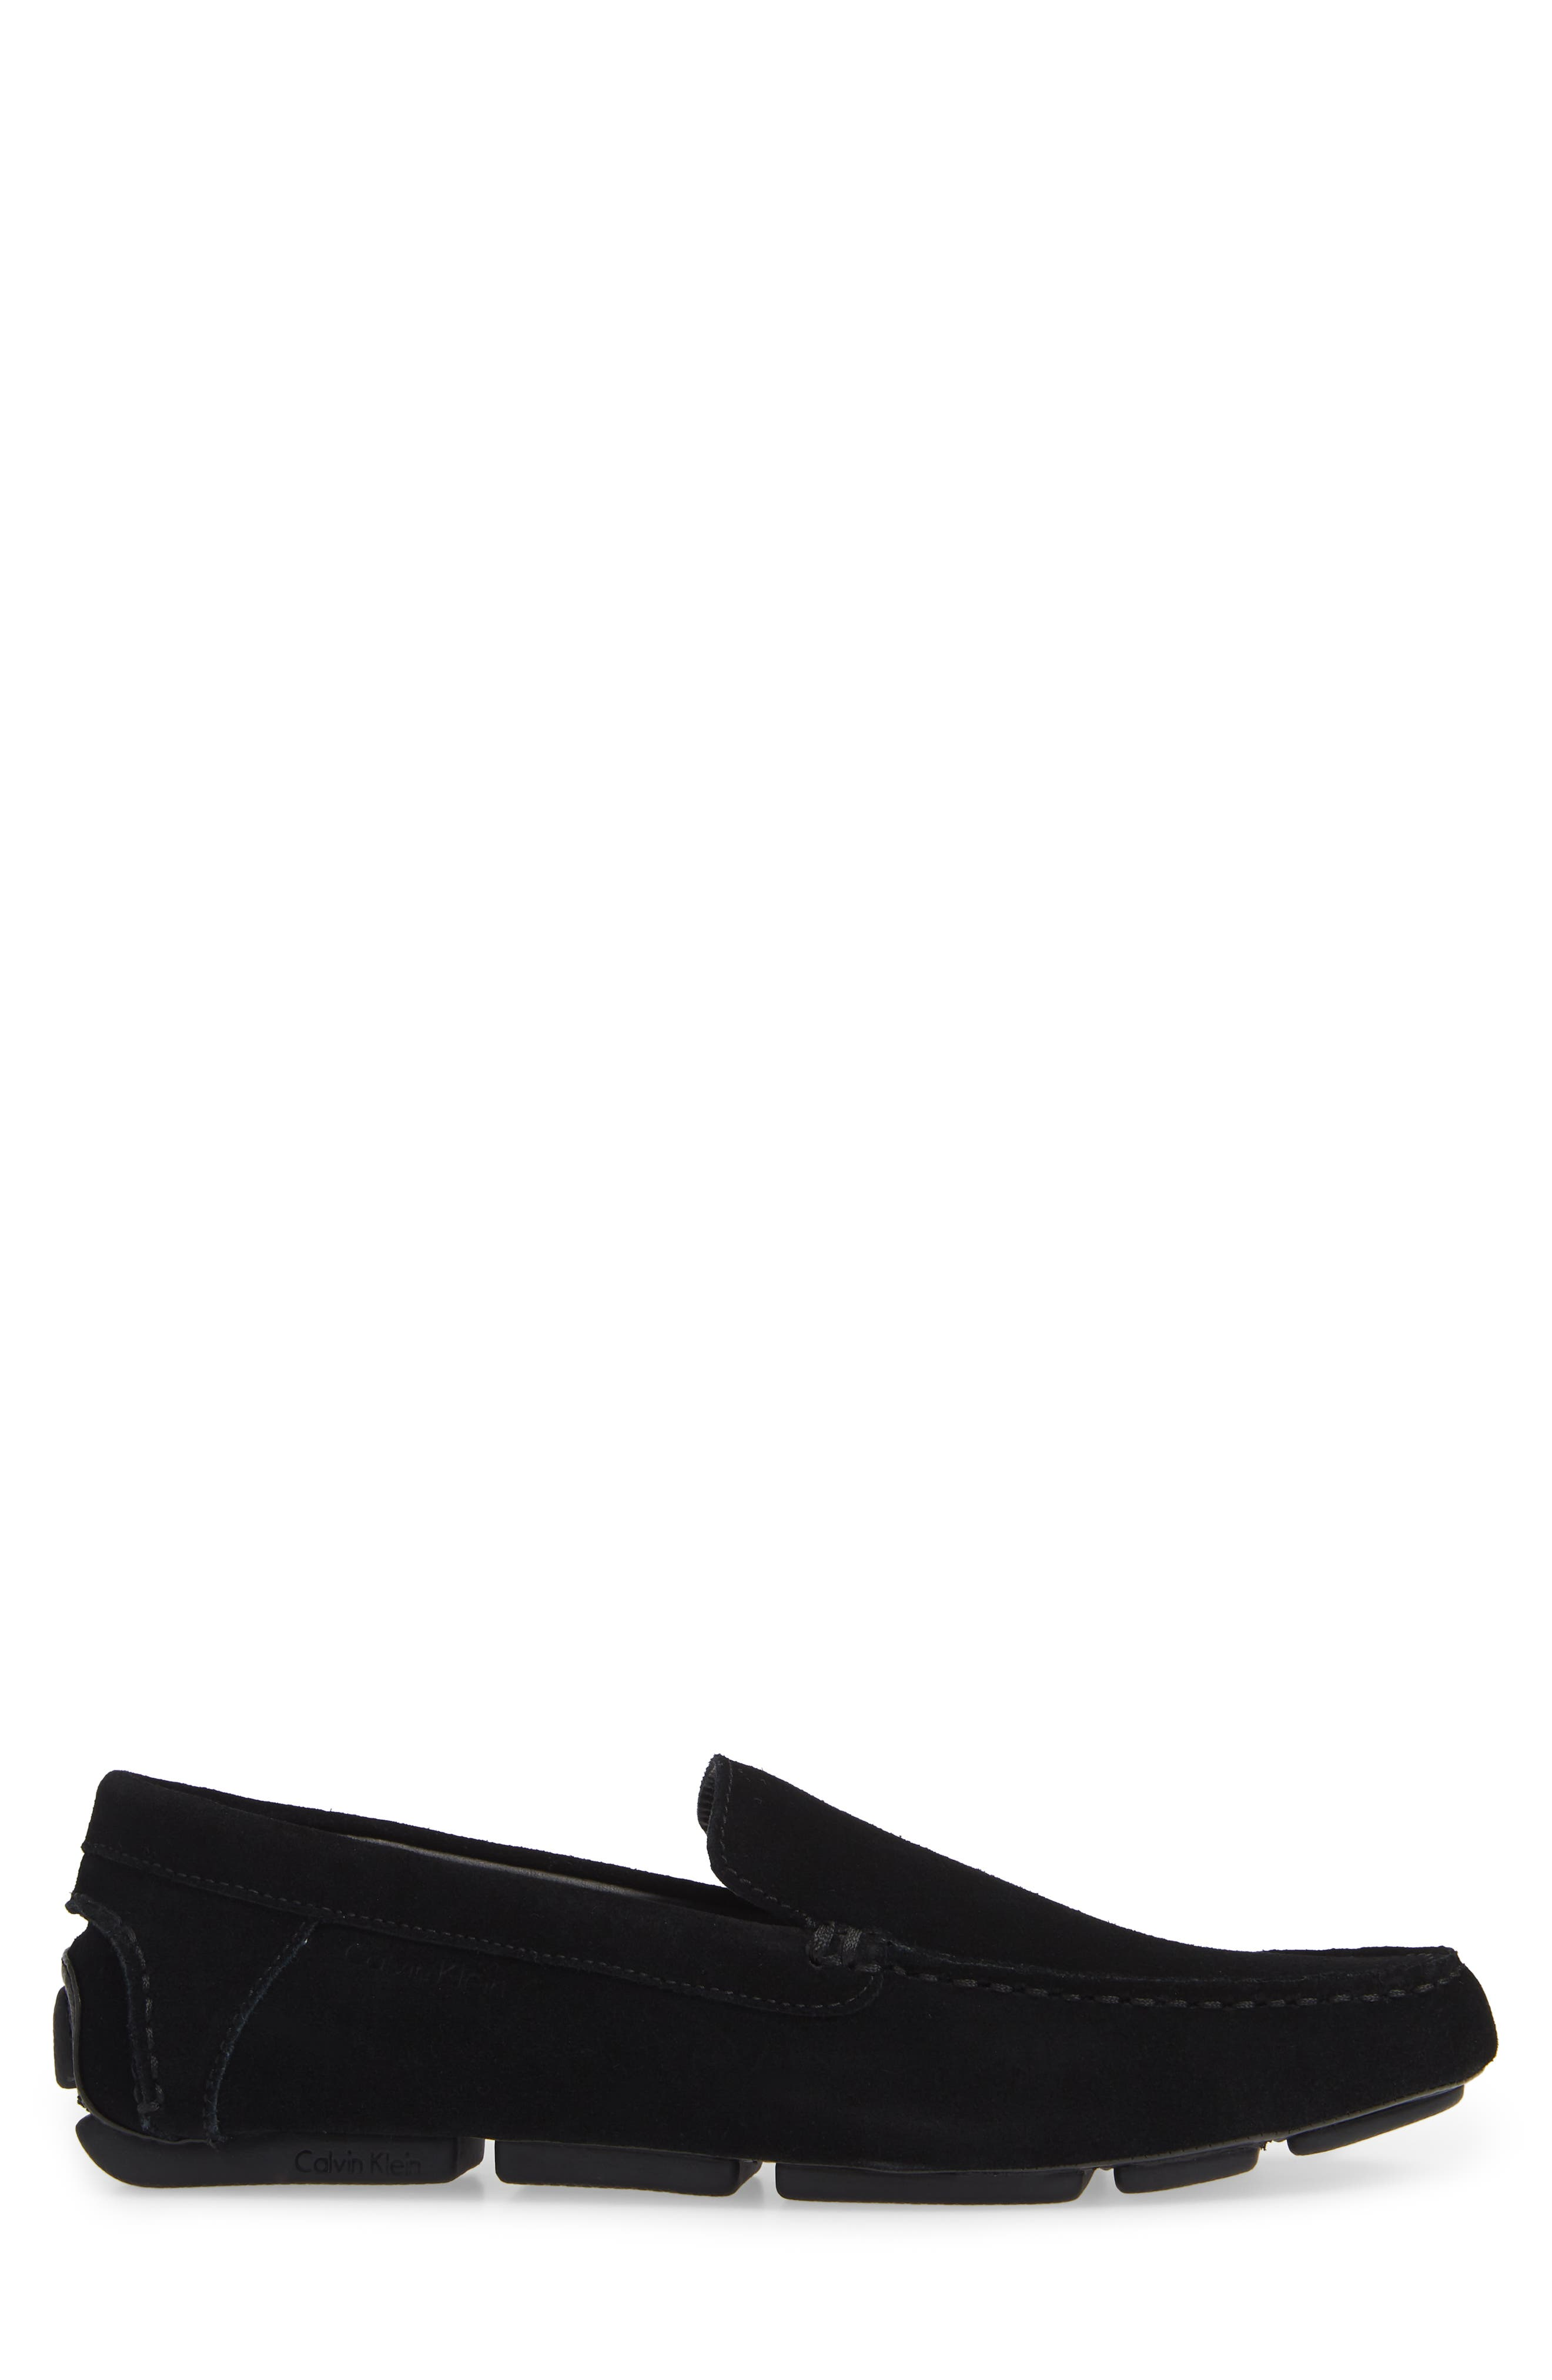 Miguel Textured Driving Loafer,                             Alternate thumbnail 3, color,                             BLACK CALF SUEDE